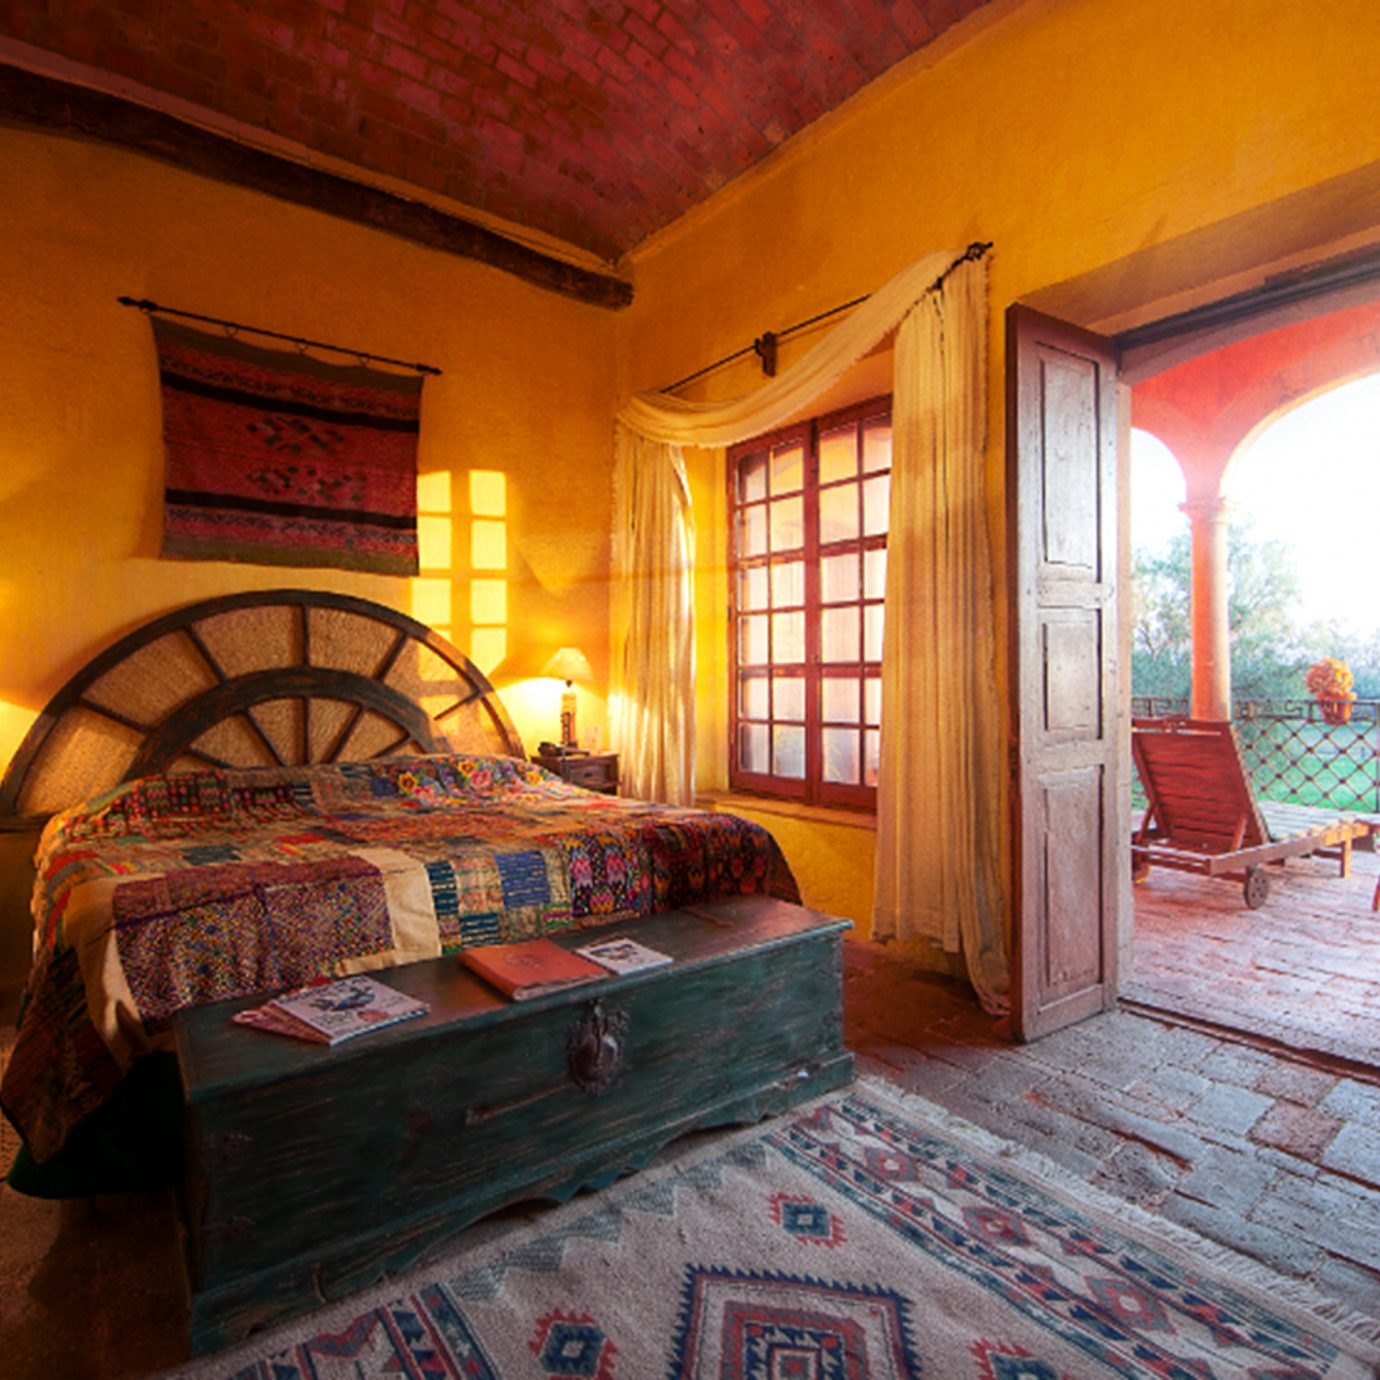 Balcony Bedroom Romantic Rustic house property building home living room cottage mansion Villa hacienda farmhouse